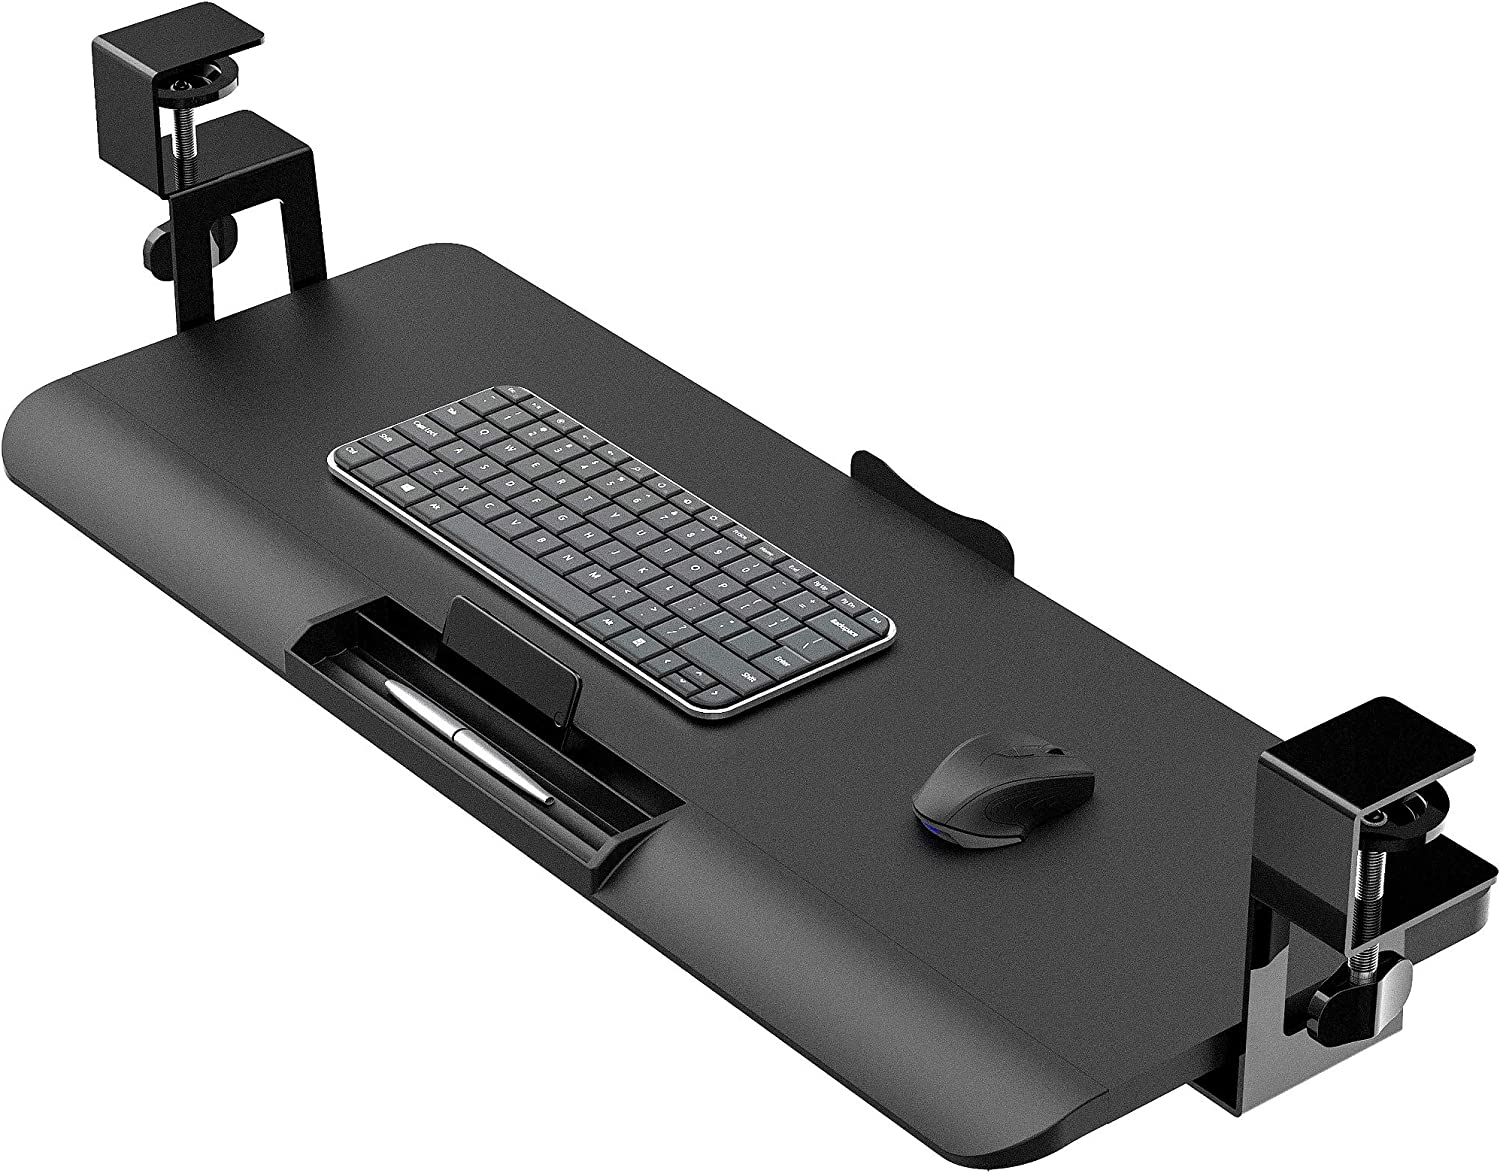 Fenge Push-Pull Keyboard Drawer Under Desk C Clamp on Keyboard Tray Adjustable Ergonomic Design KT760001WB